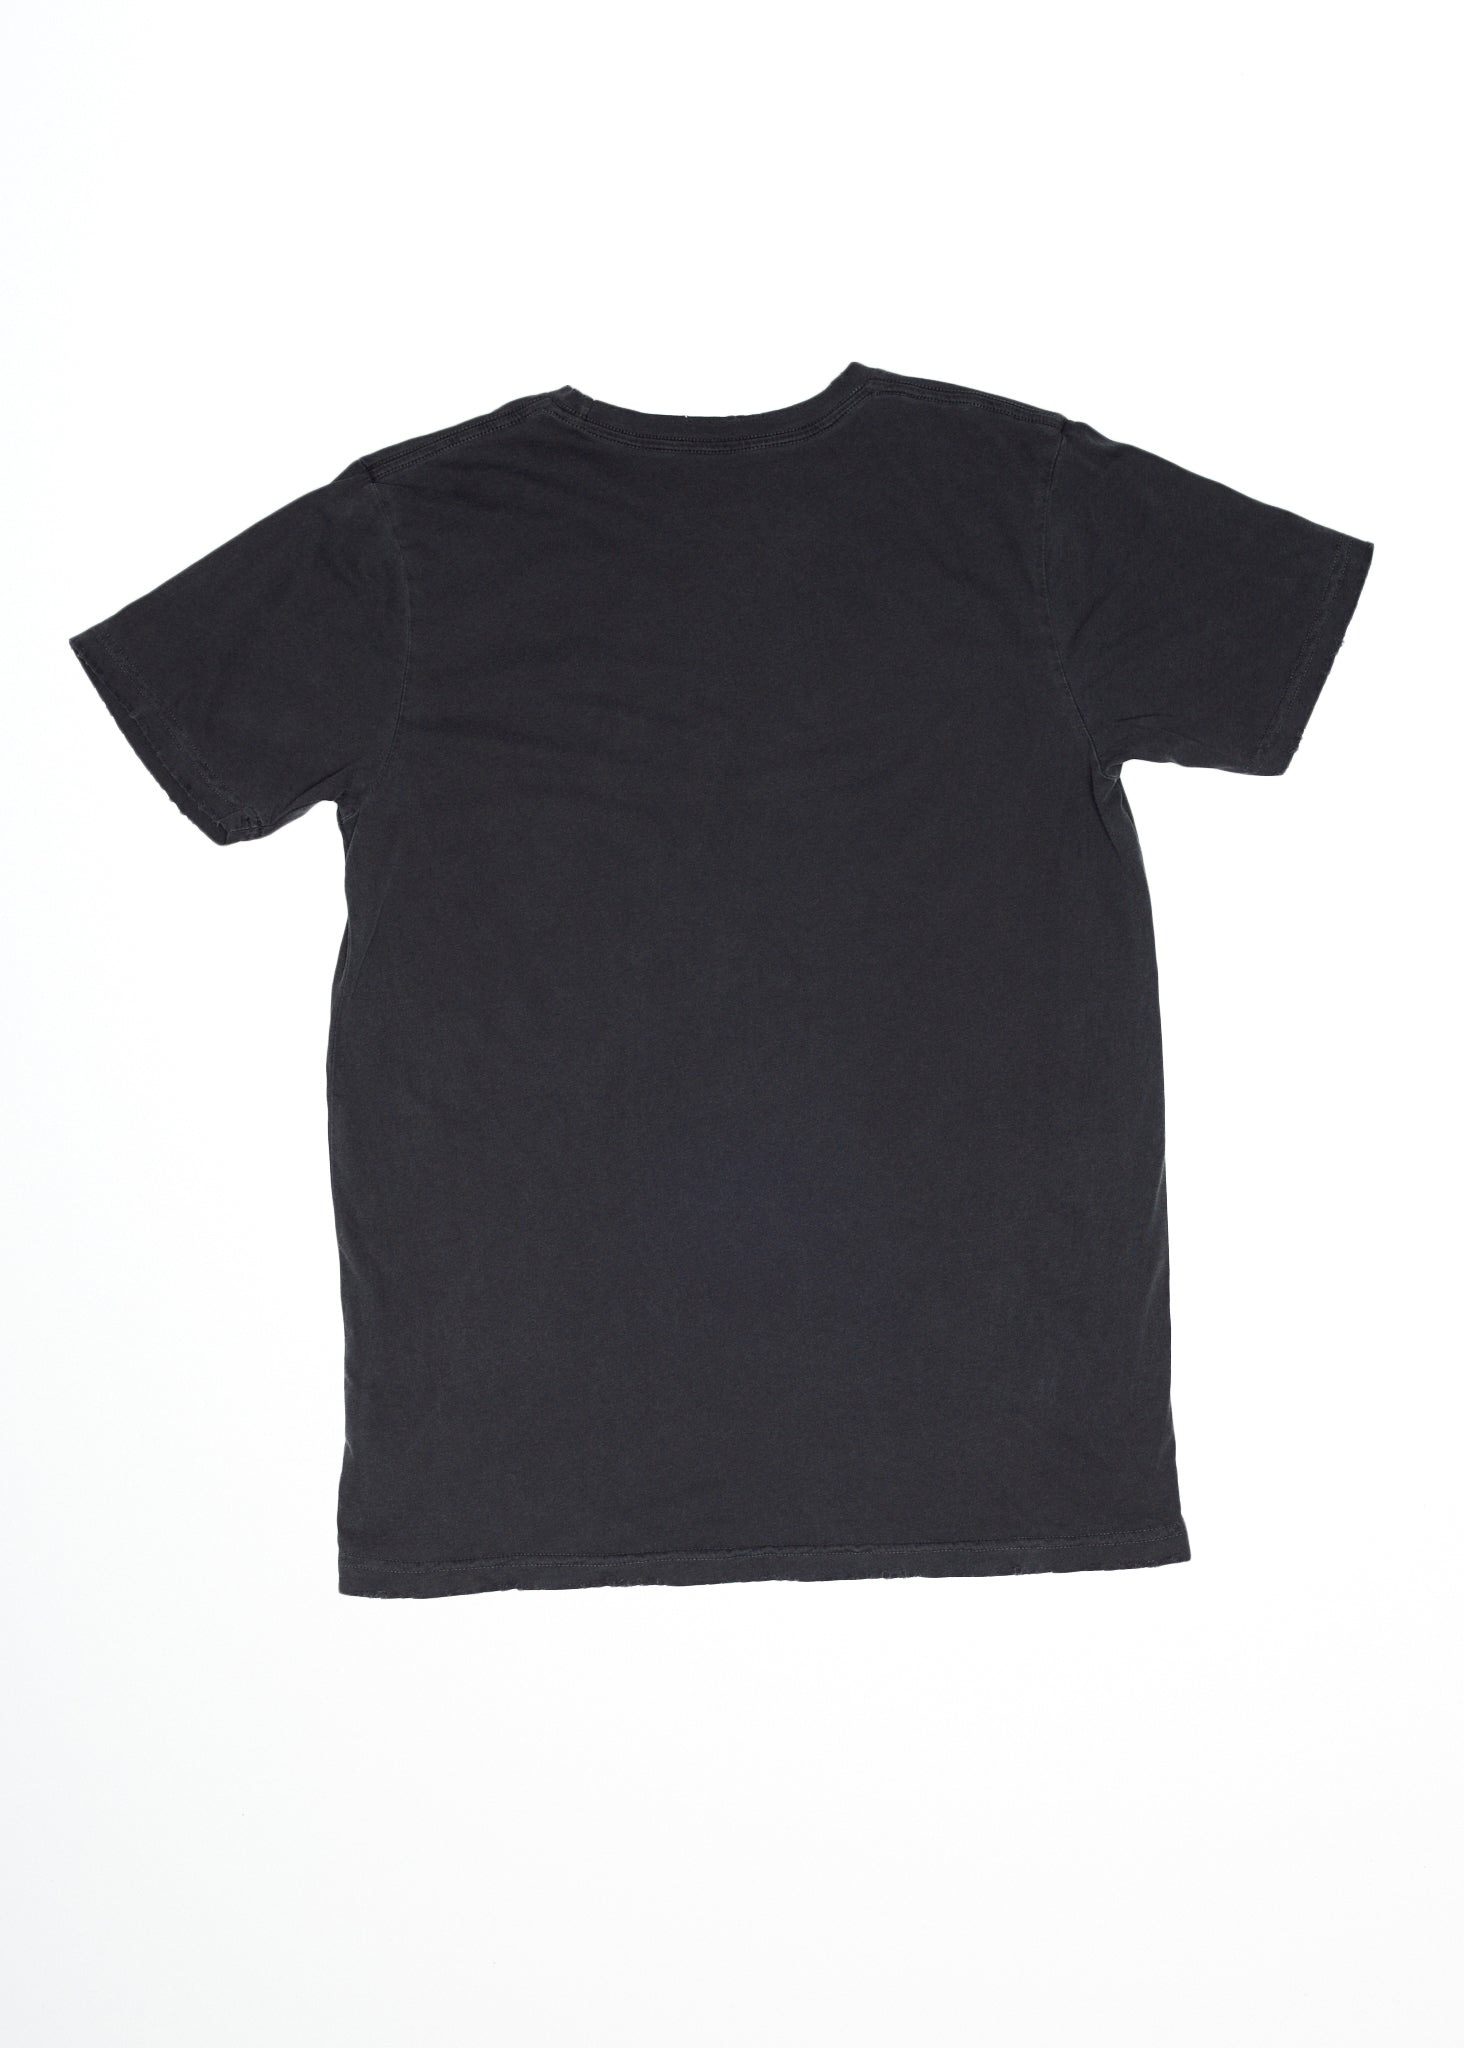 Tex Mex Men's Crew T-Shirt - Men's Tee Shirt - Midnight Rider